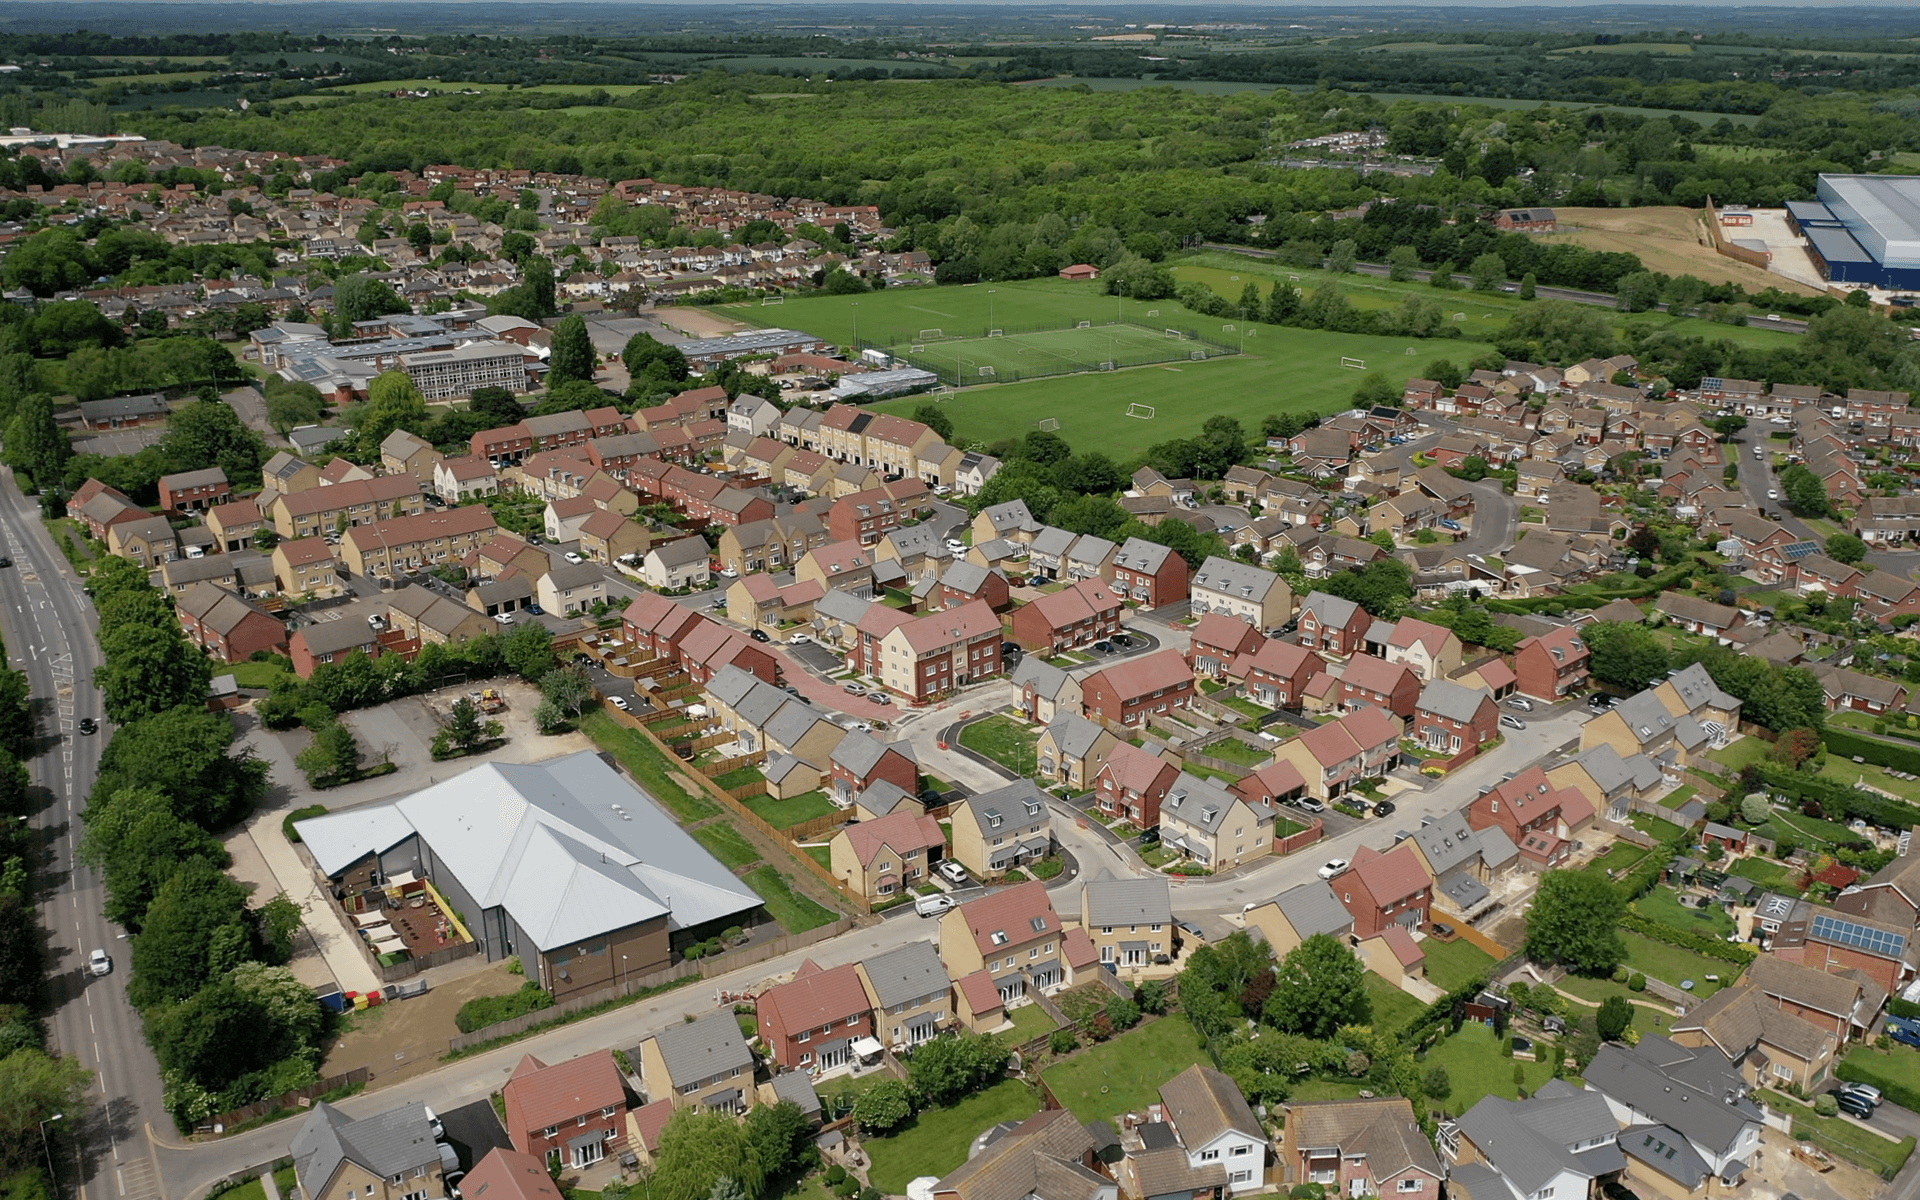 """Mavic 2 Pro"" aerial drone photo of a completed ""Barratt Homes"" development site in Kingsdown, Swindon"